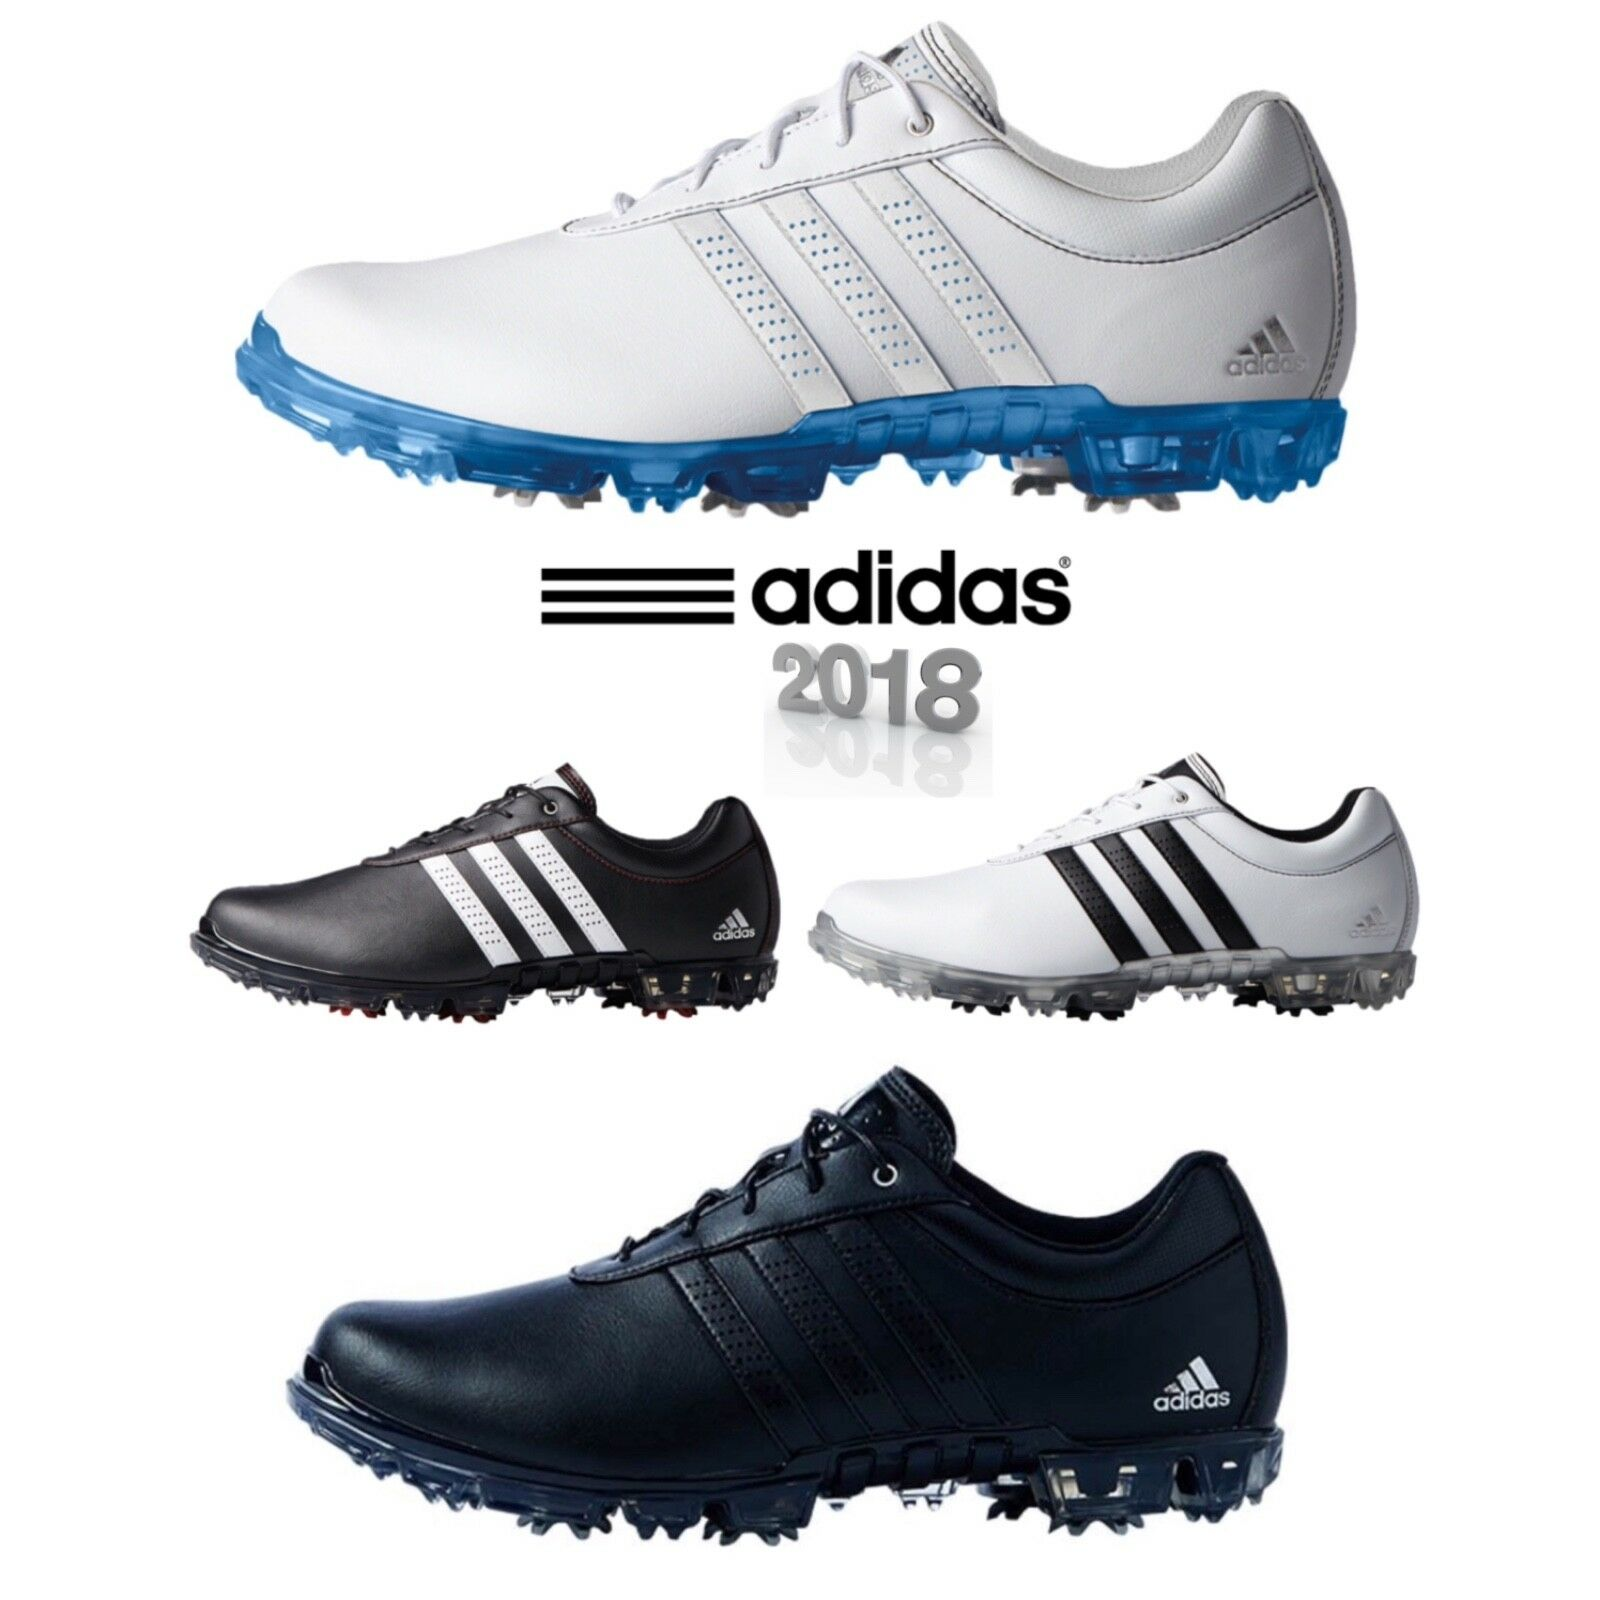 adidas adipure flex golf shoes mens